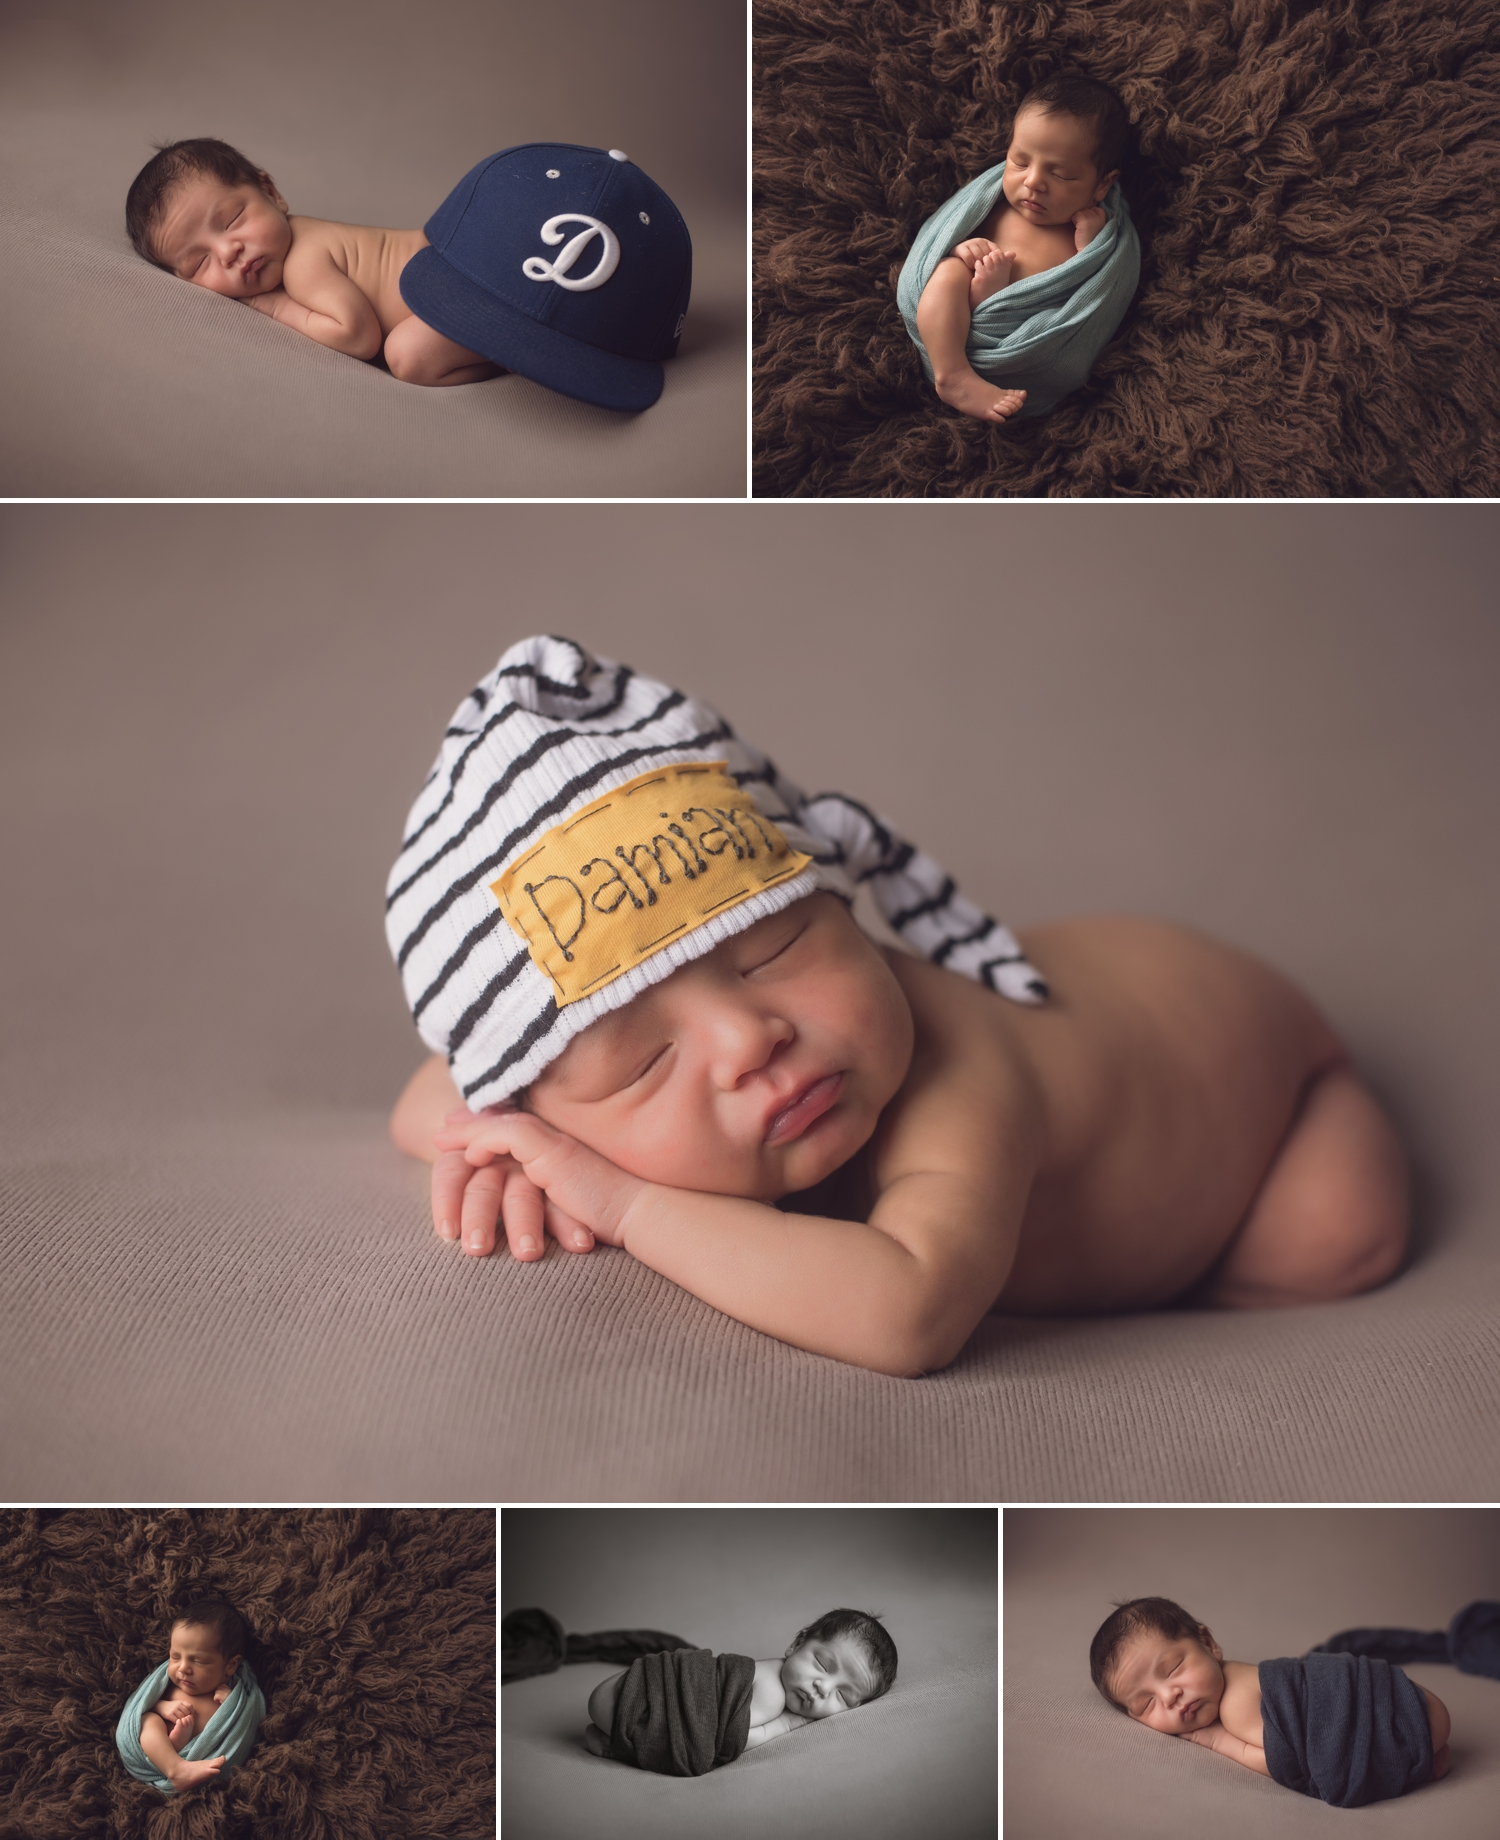 southwest-kansas-newborn-photography 2.jpg